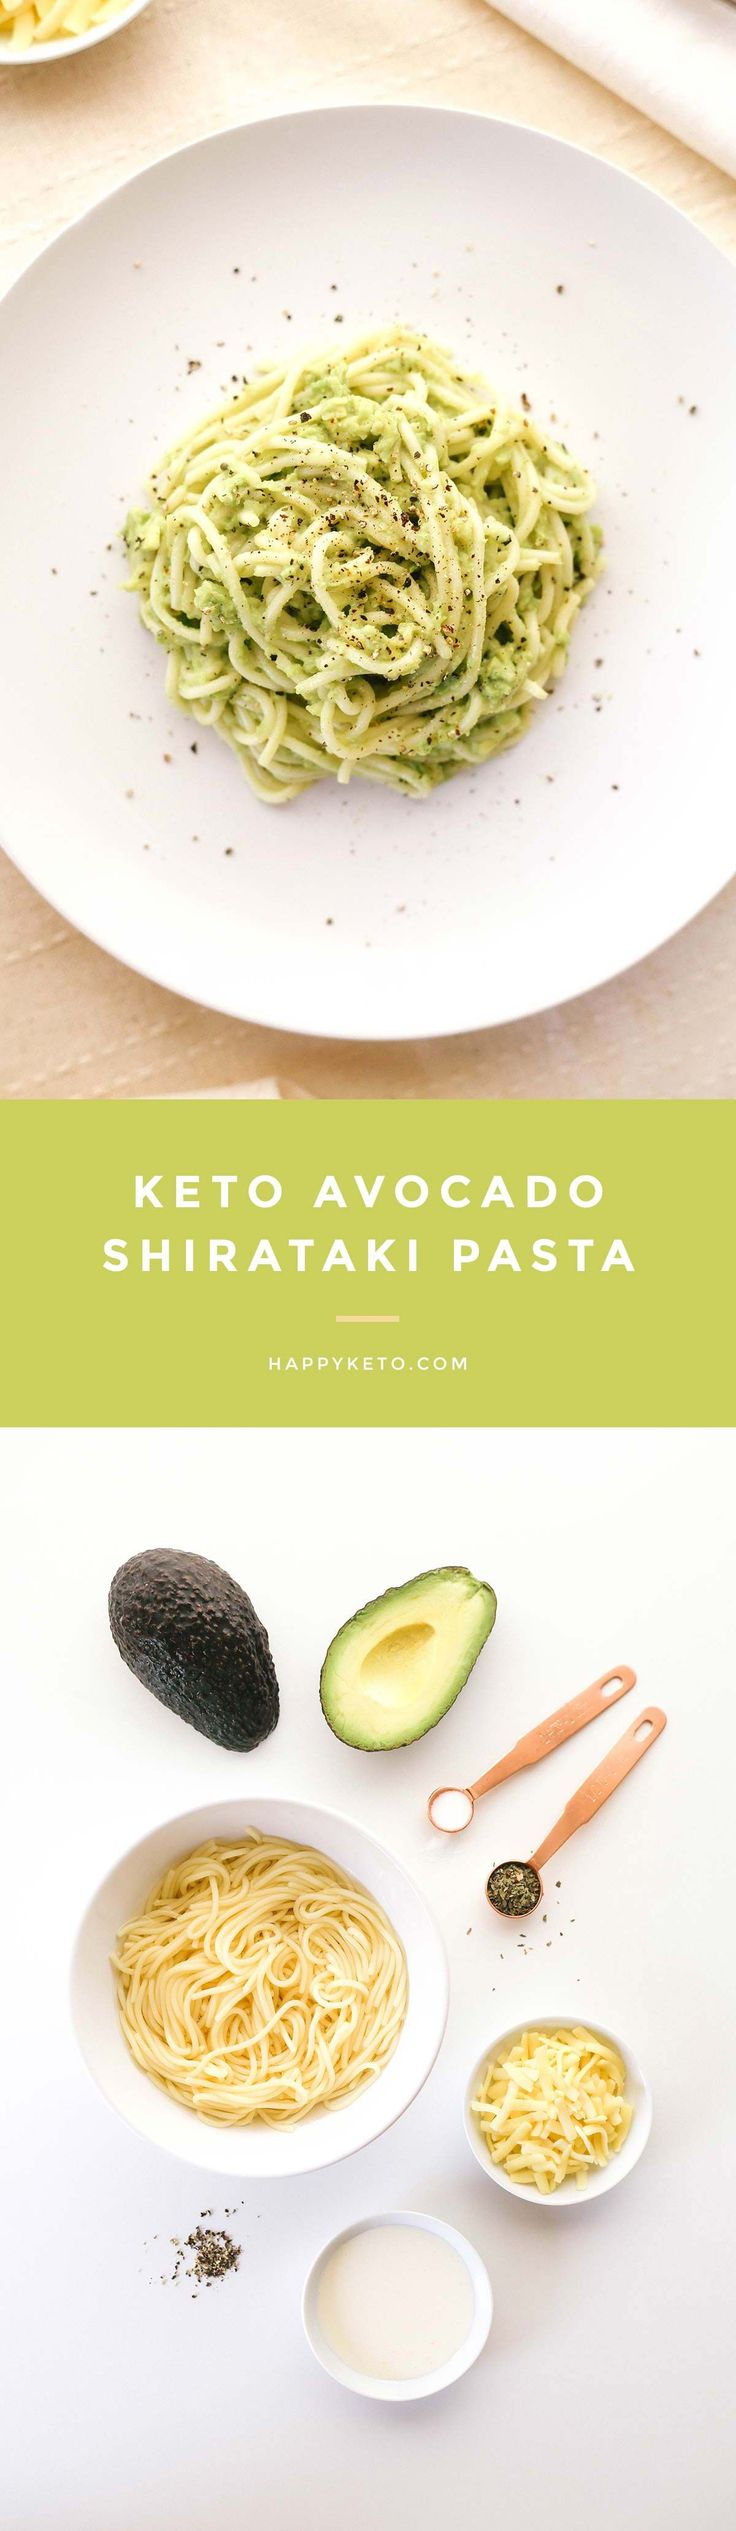 Avocado pasta for keto and low carb. Easy recipe with shirataki noodles. (heavy cream recipes)